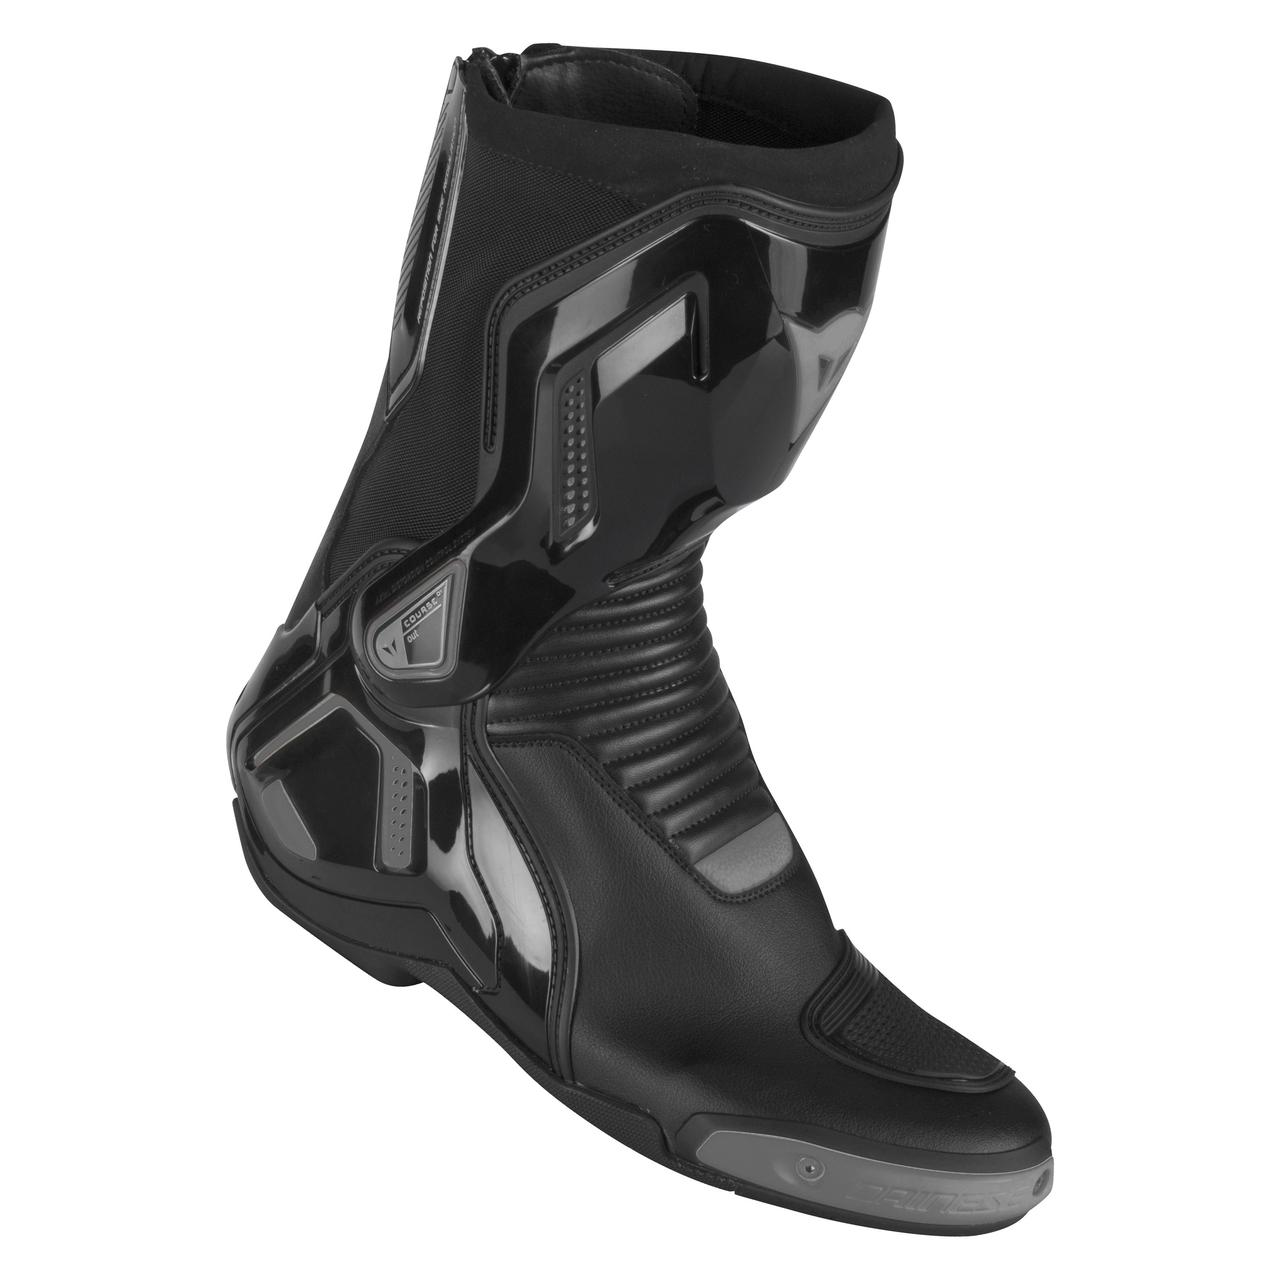 МОТОБОТЫ DAINESE COURSE D1 OUT AIR, 42 *